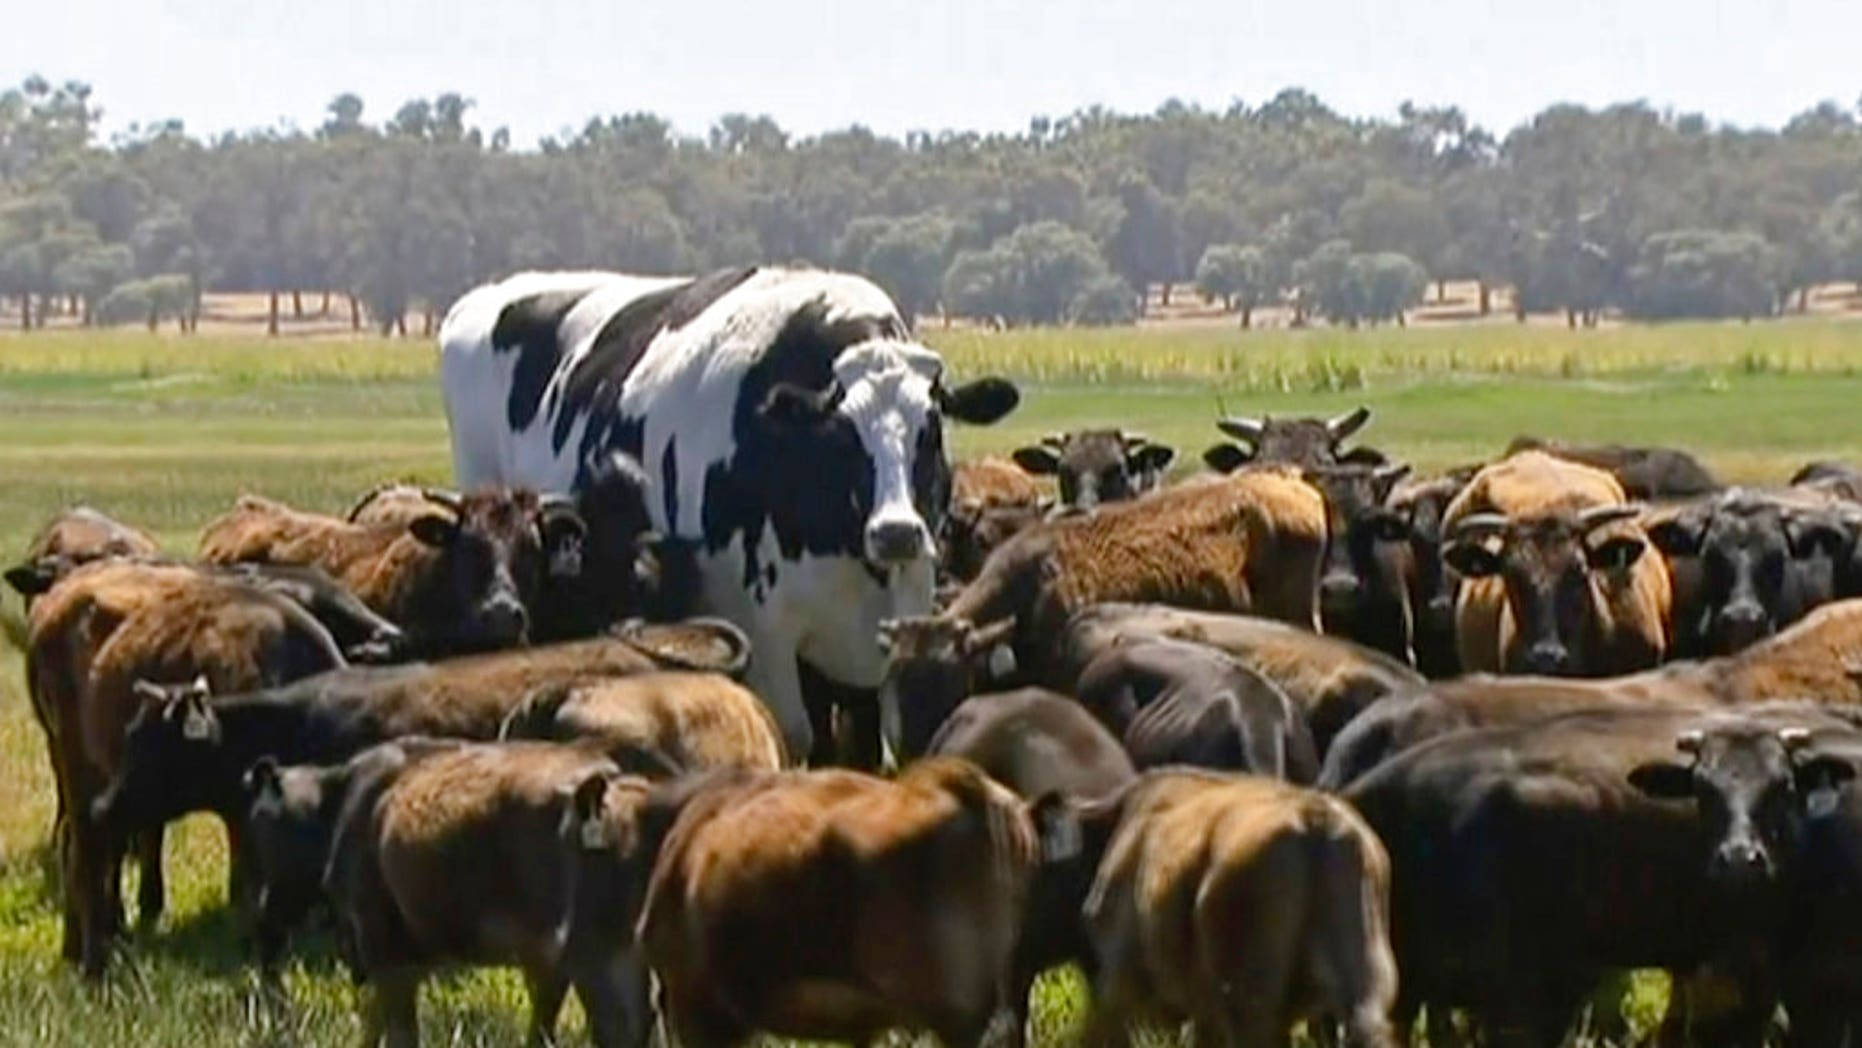 Knickers the steer is too beefy to become a burger